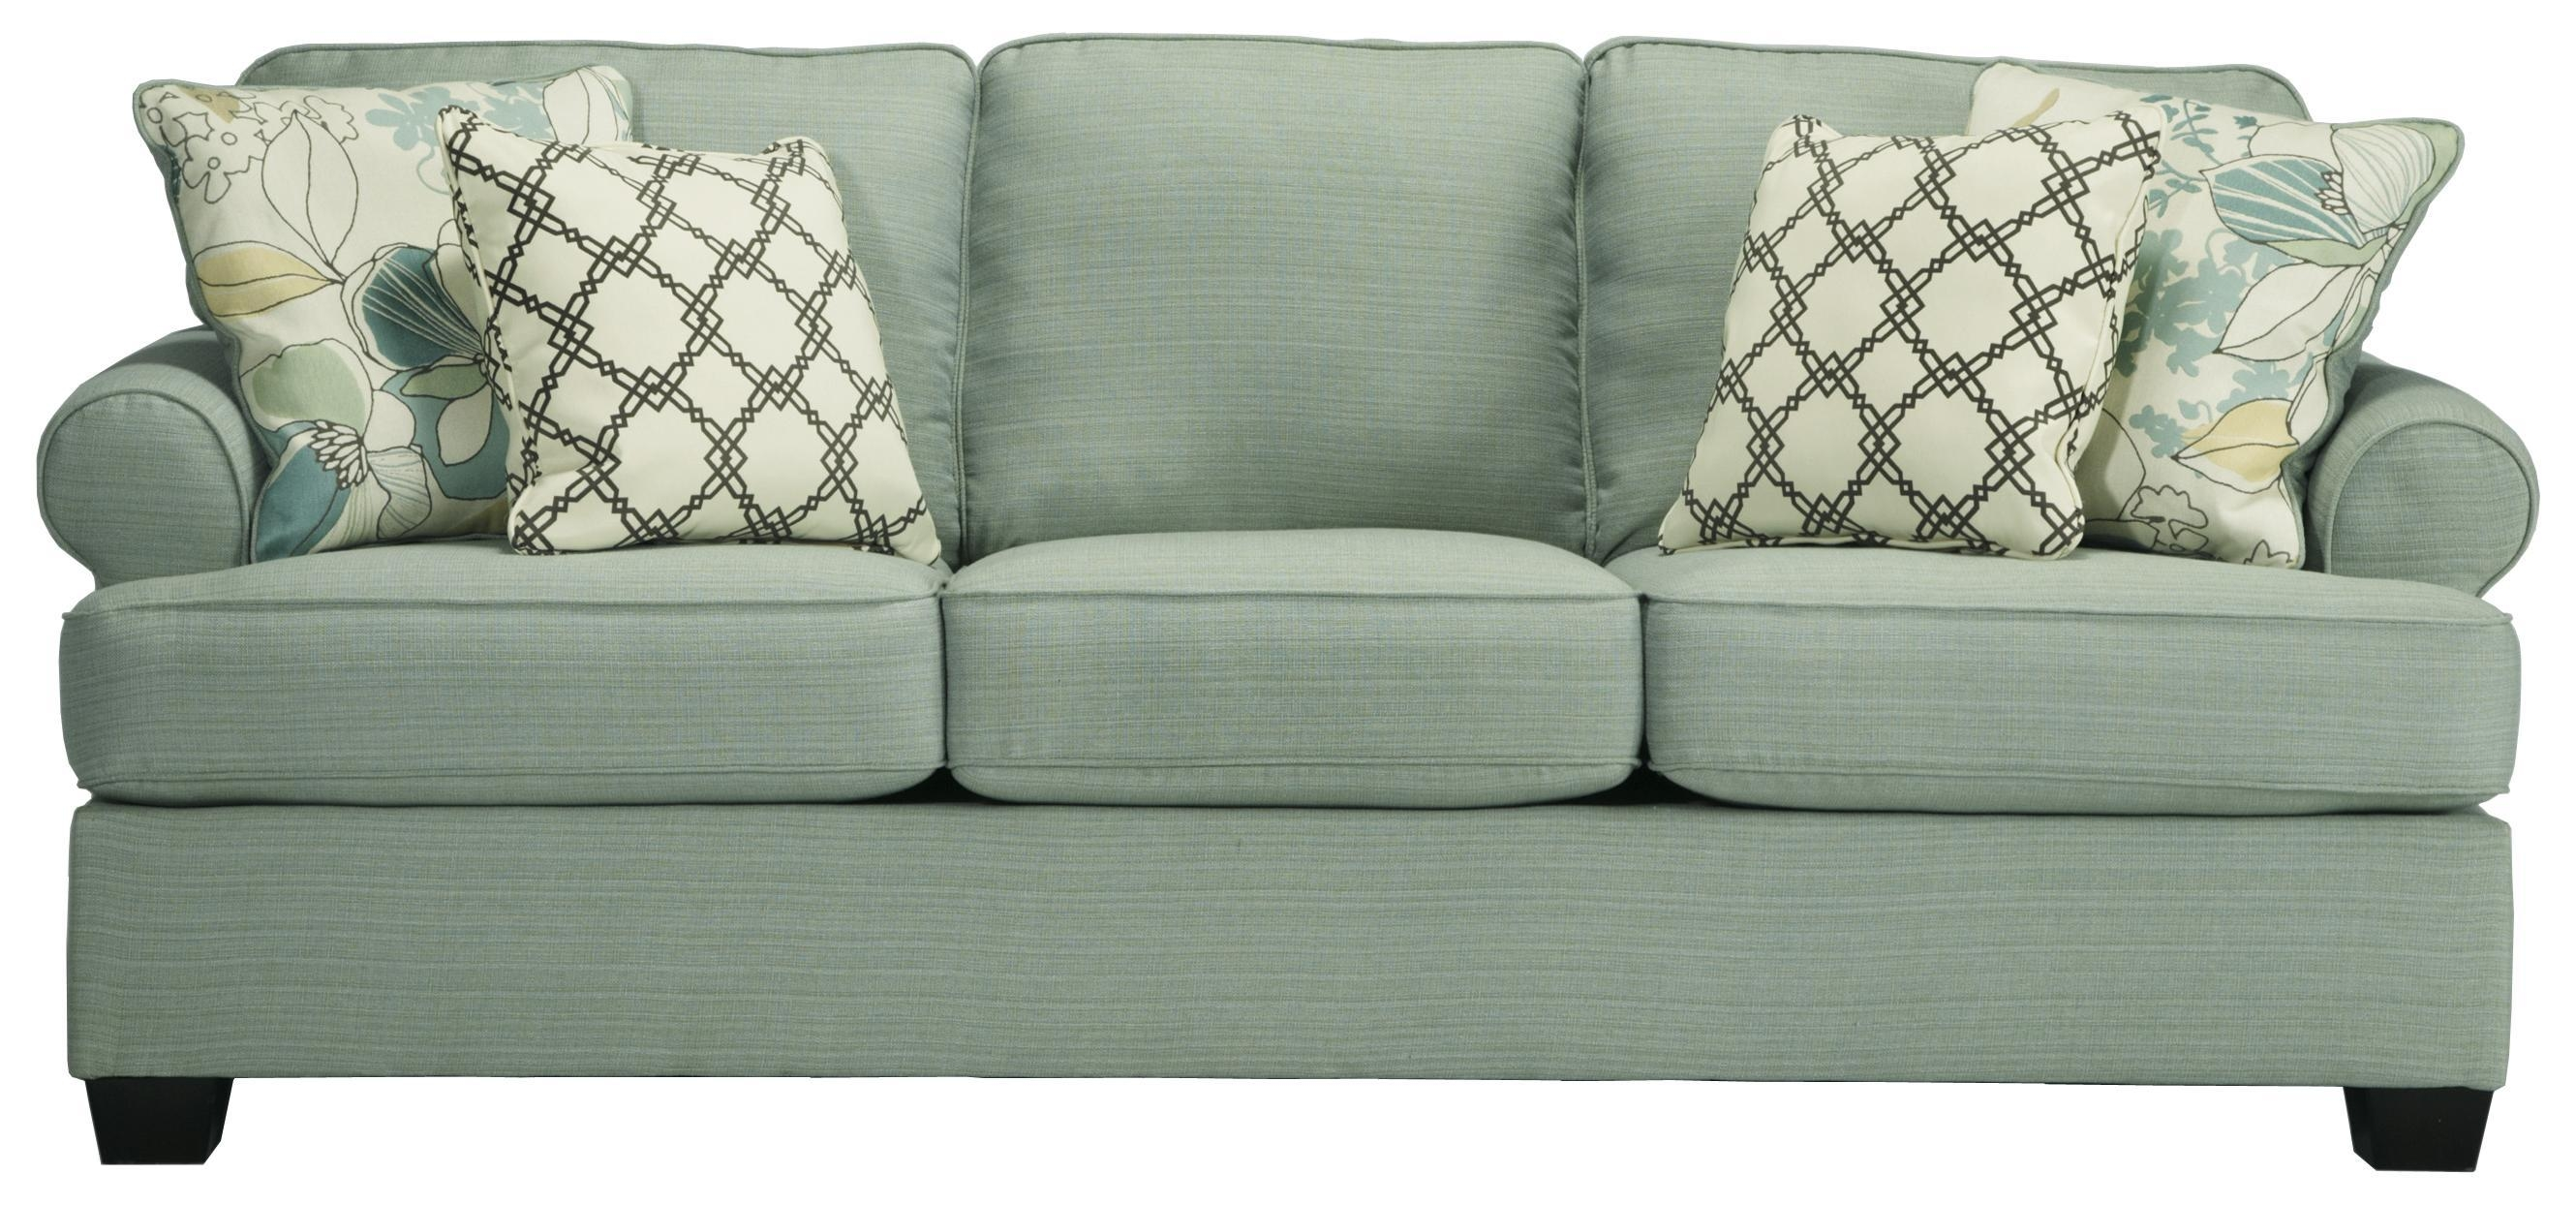 Signature Designashley Daystar – Seafoam Contemporary Queen In Seafoam Sofas (View 10 of 20)